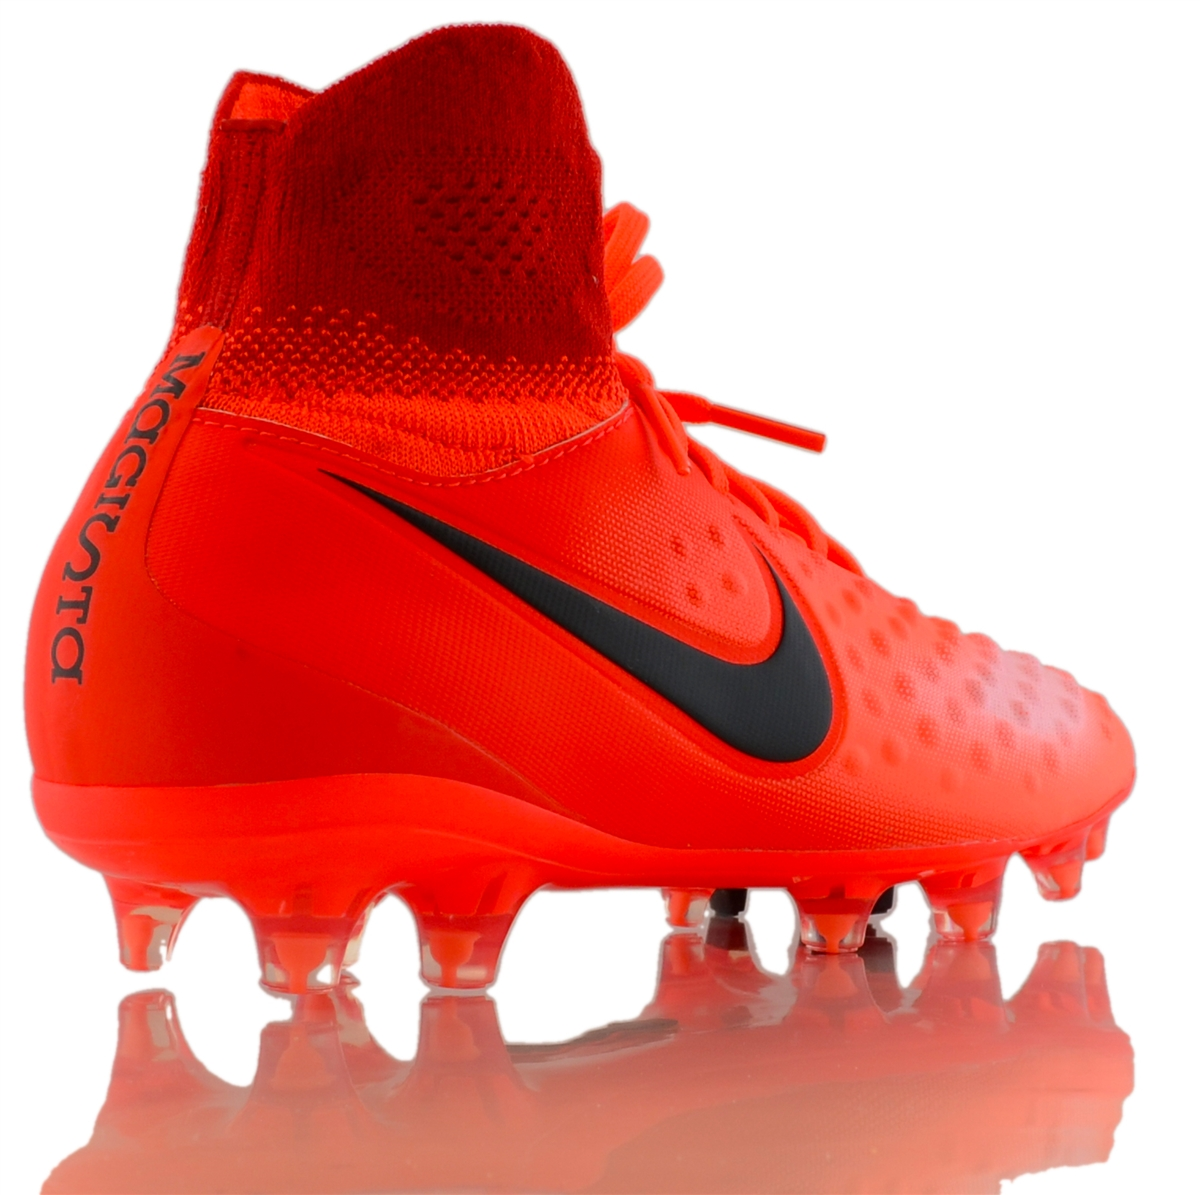 all red cleats outlet online 36587 fa2da